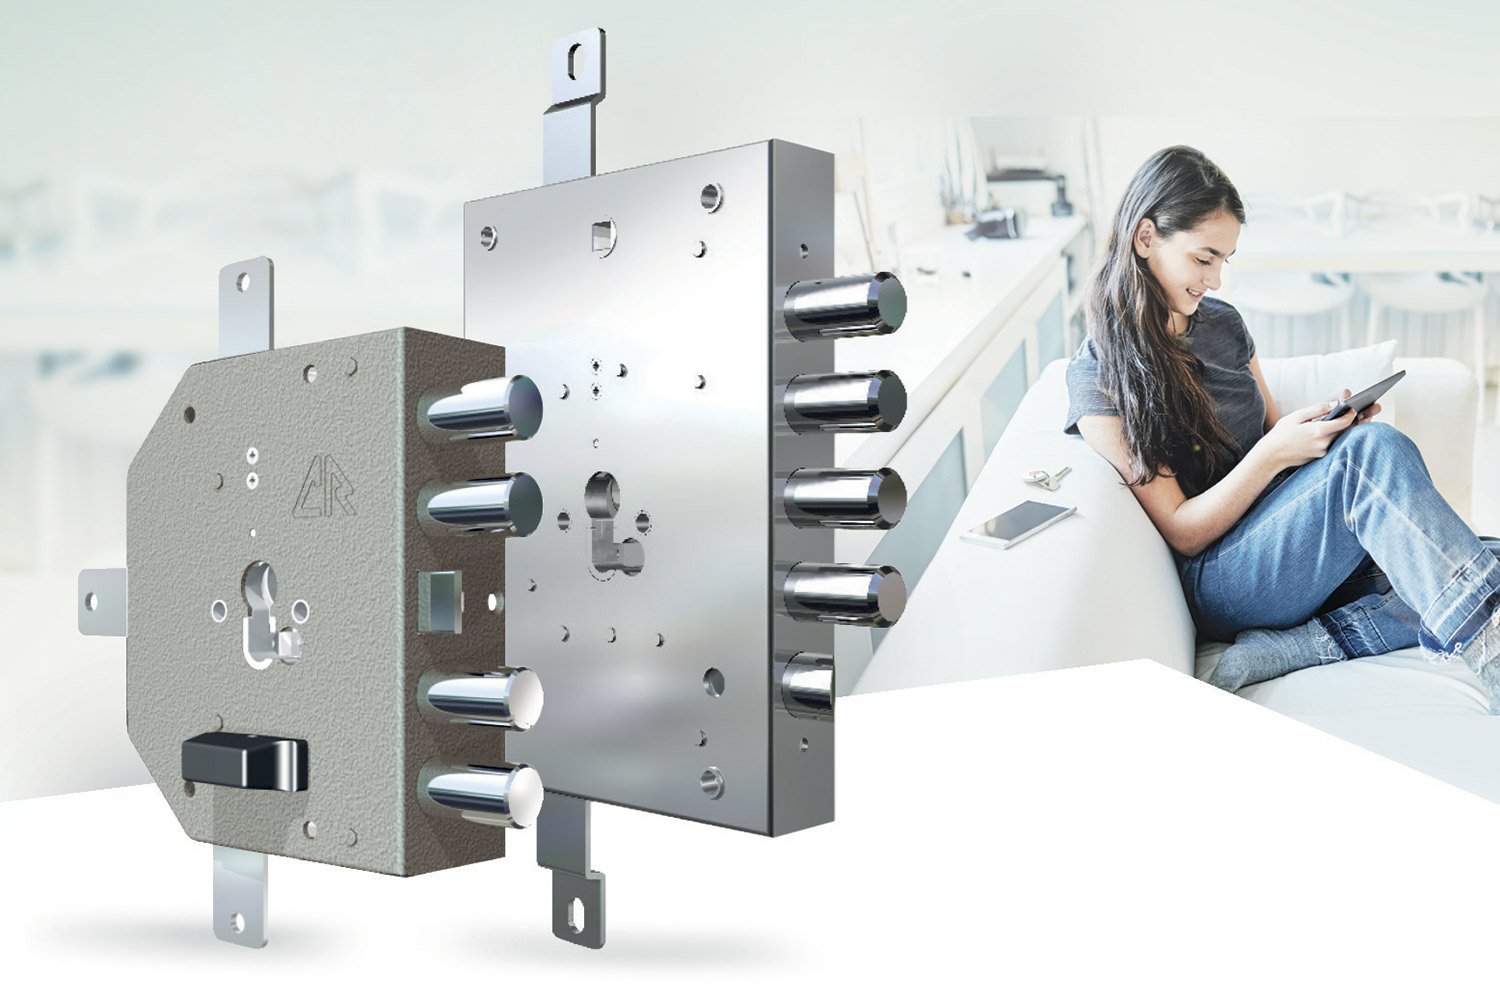 two gear locks for euro profile cylinder with a girl sitting on the sofa looking at a tablet in the background